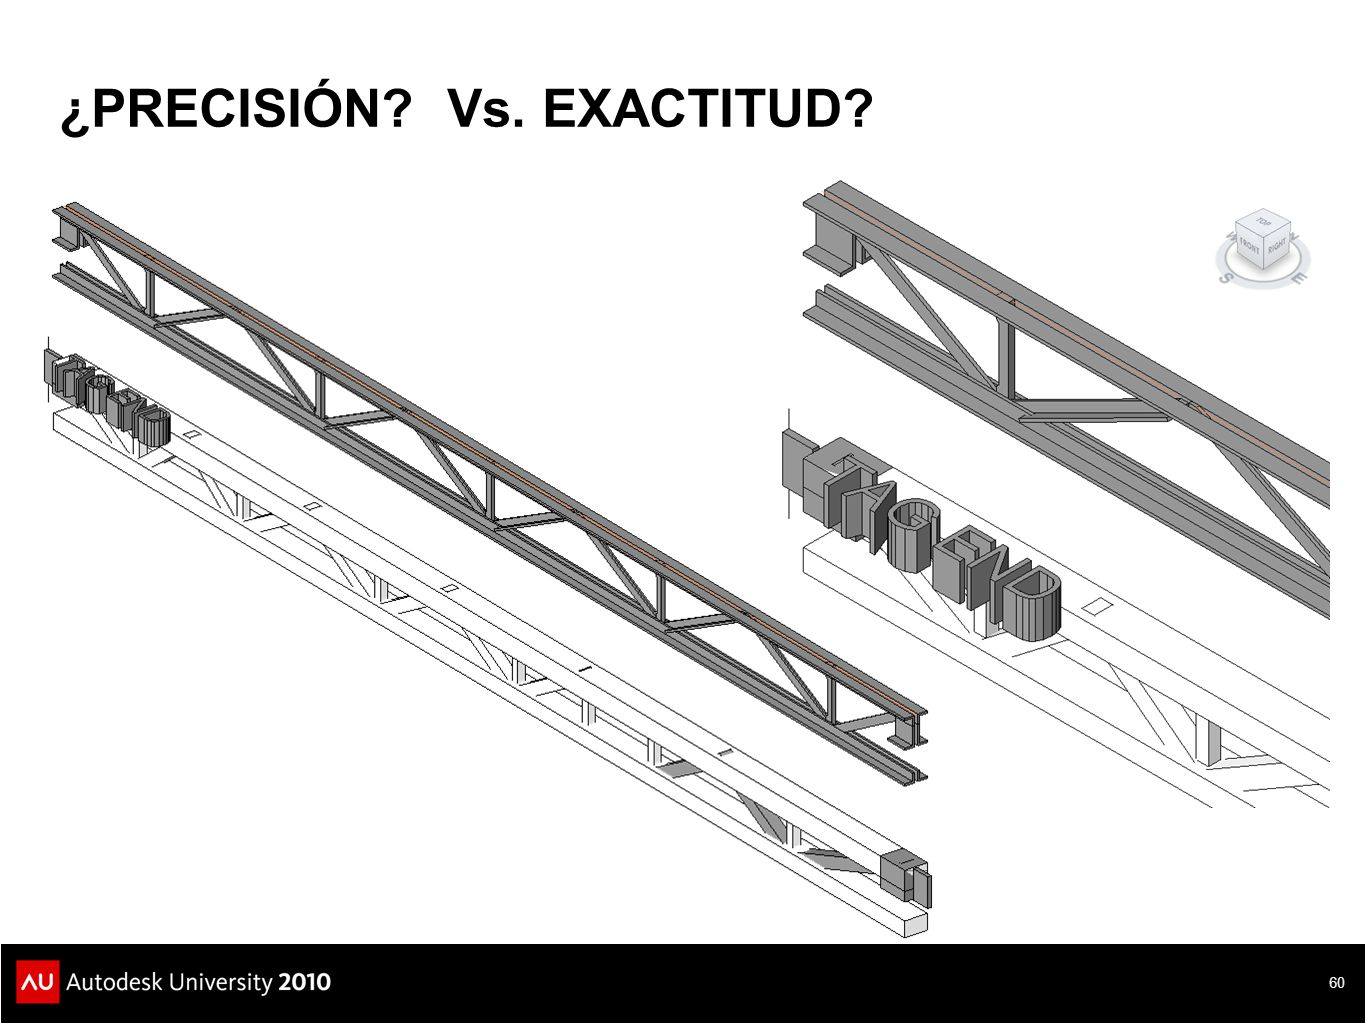 ¿PRECISIÓN Vs. EXACTITUD